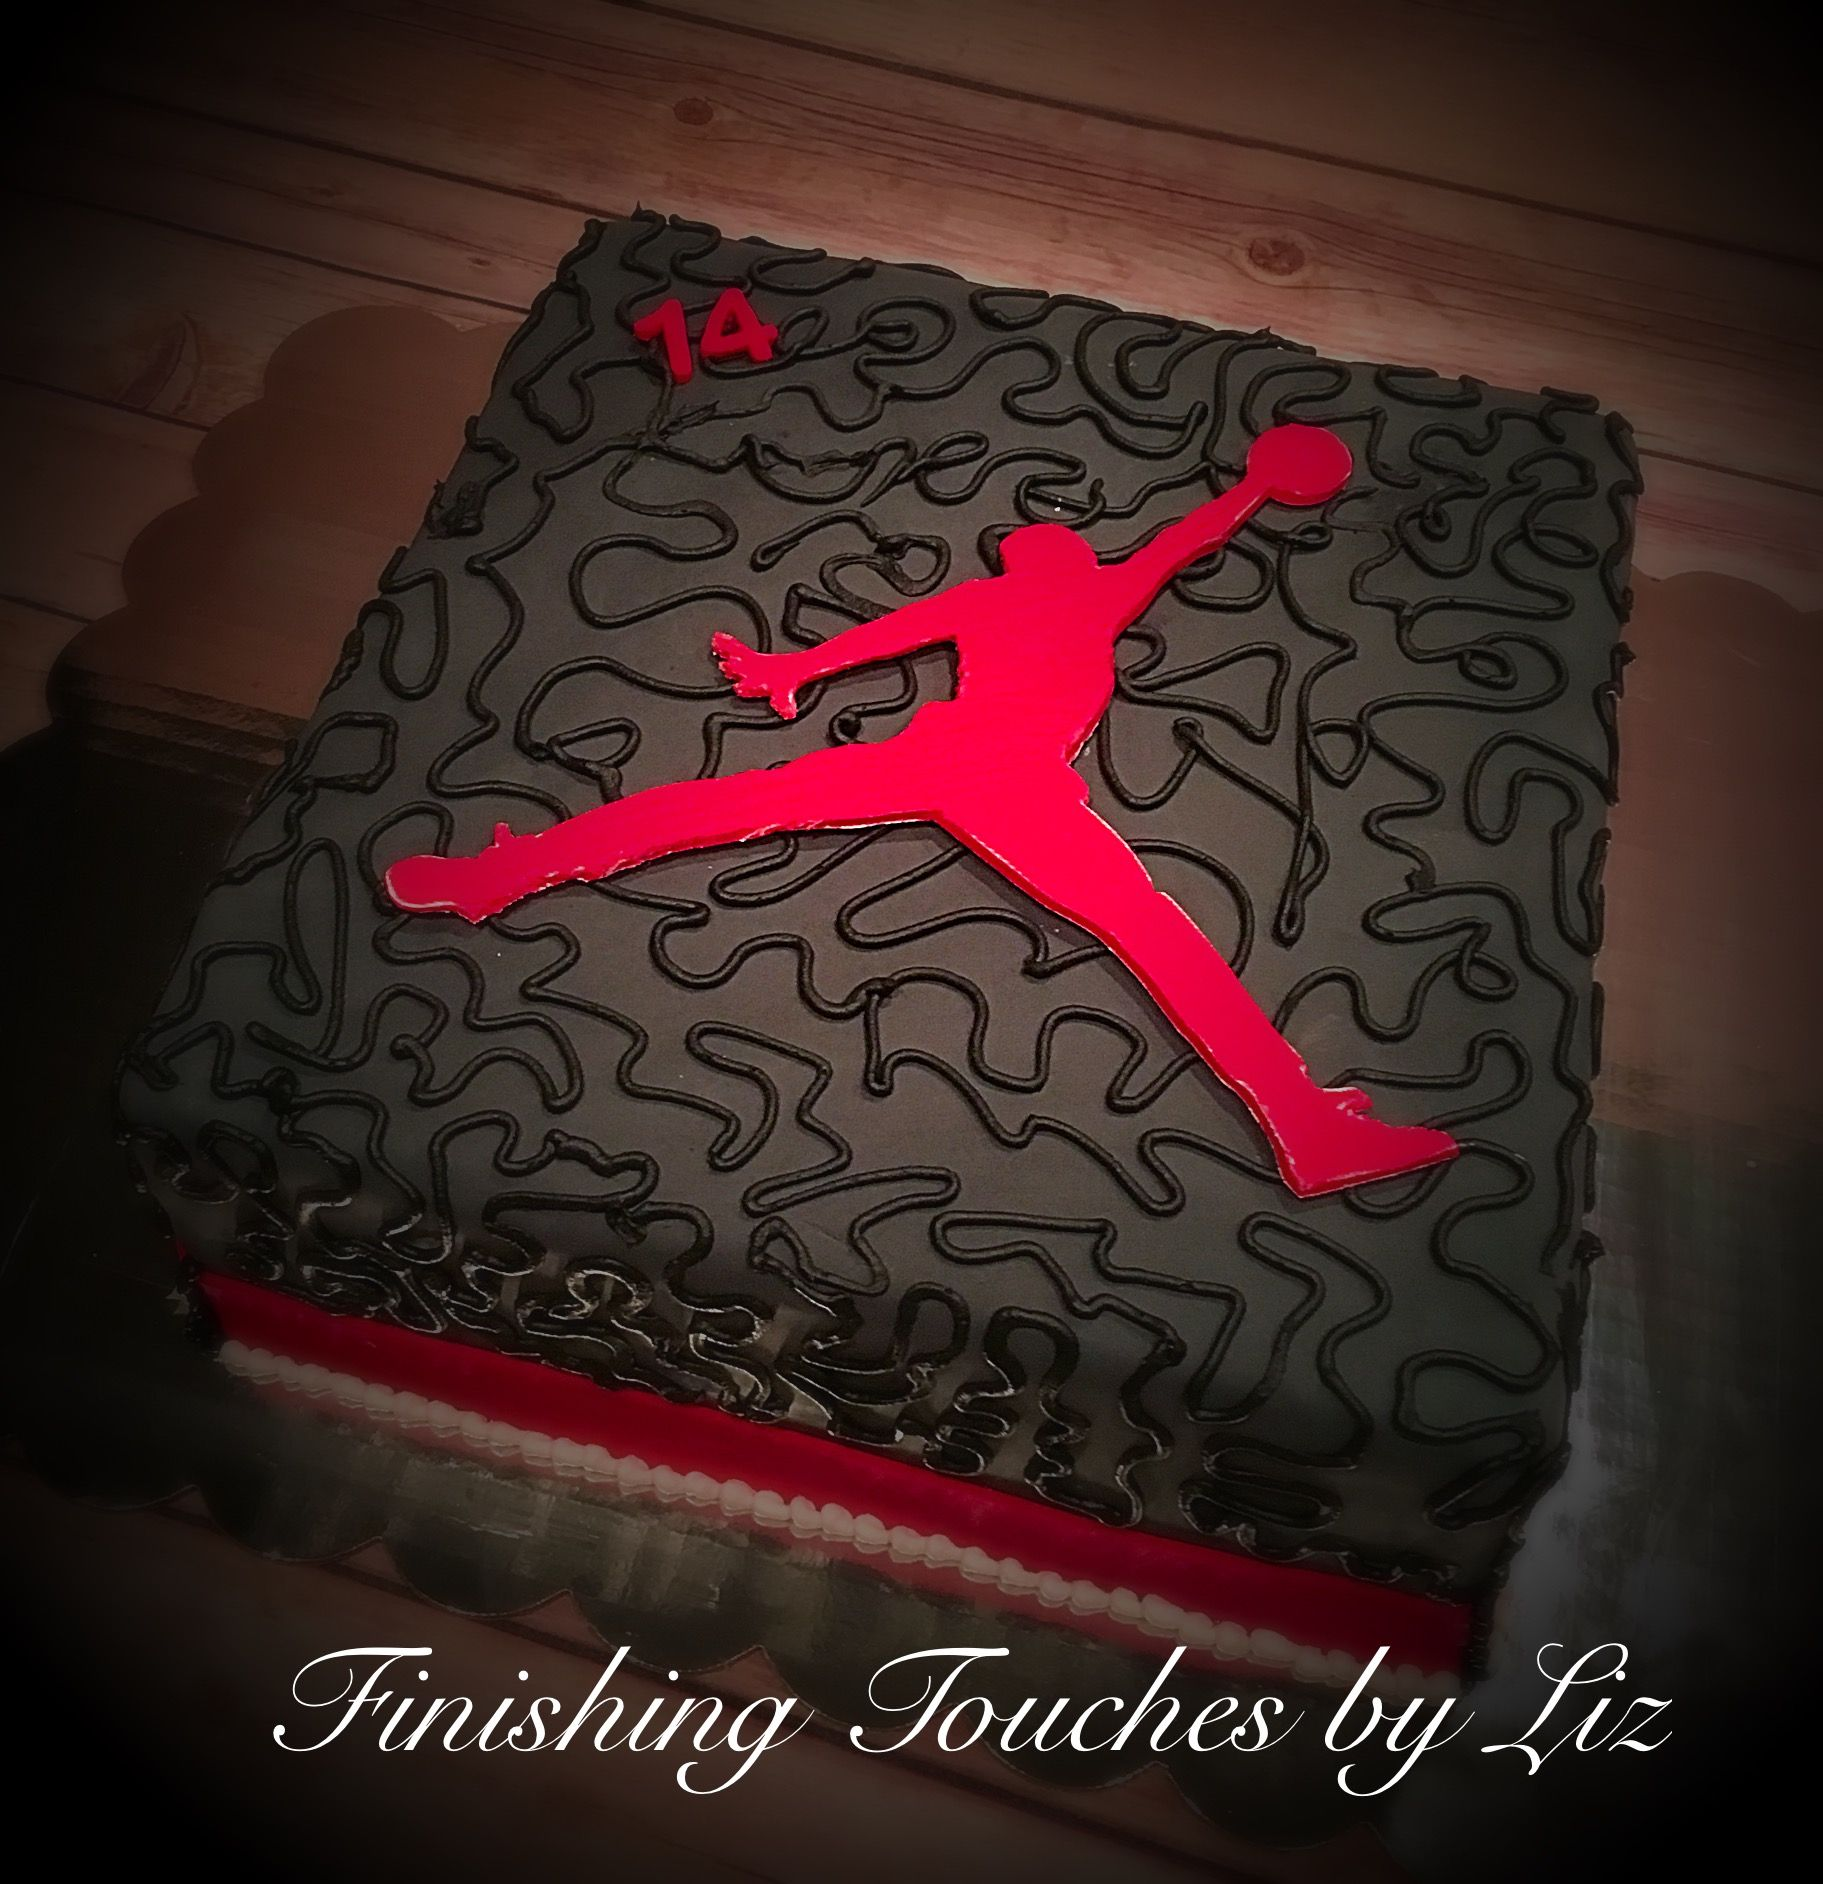 Air Jordan birthday cake By wwwfacebookcomfinishingtouchesbyliz